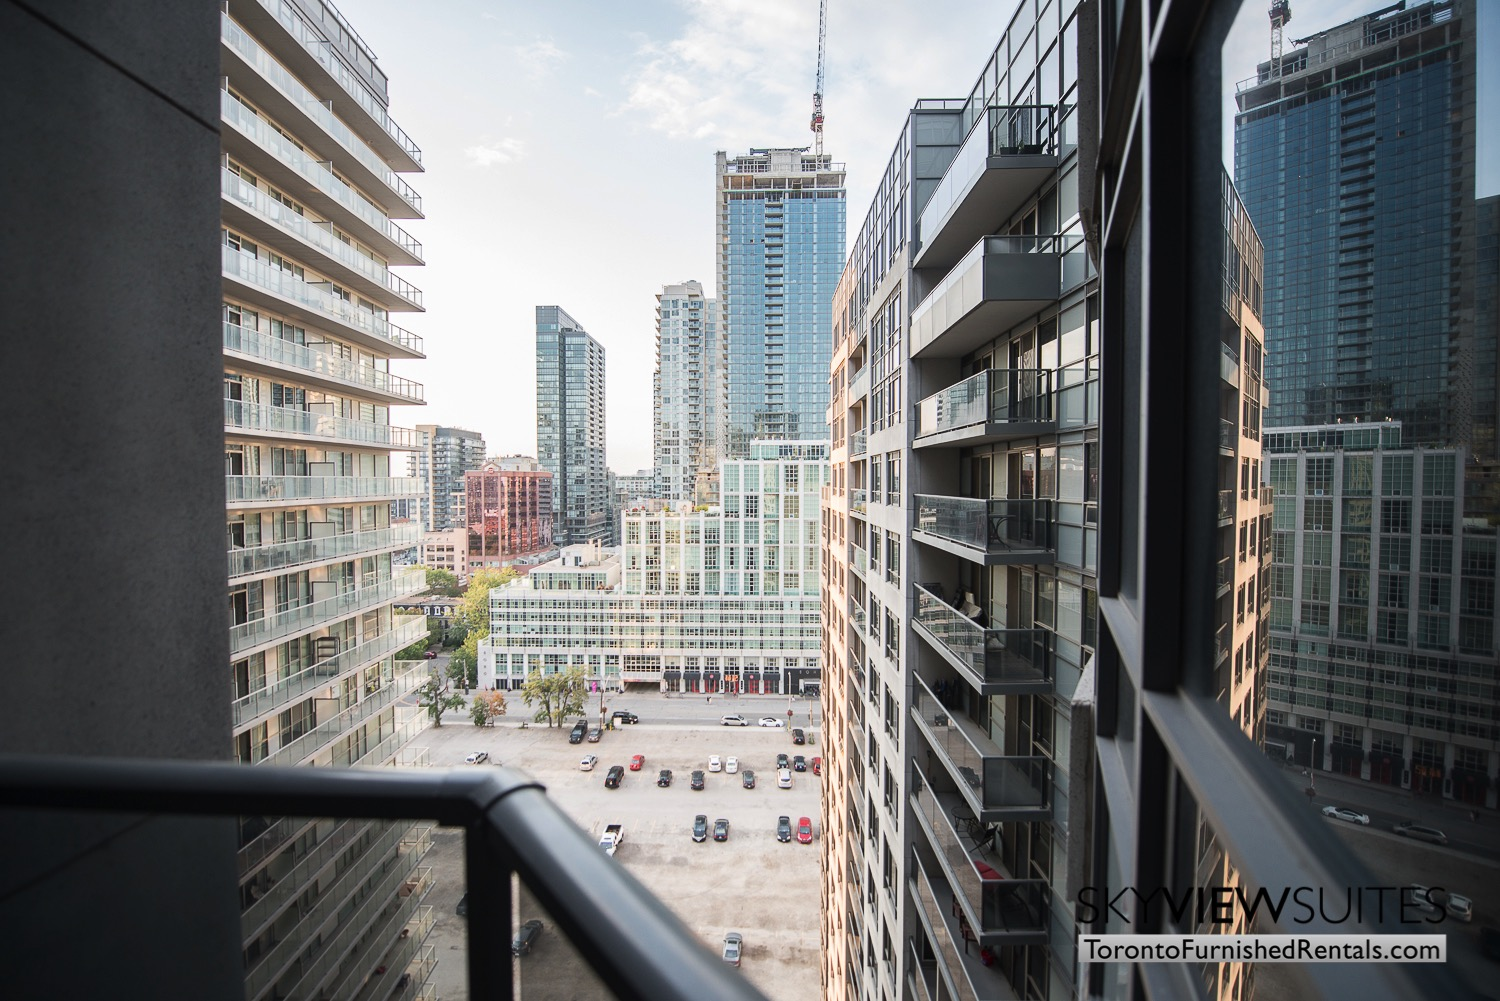 hort-term-rentals-toronto-views-entertainment-district